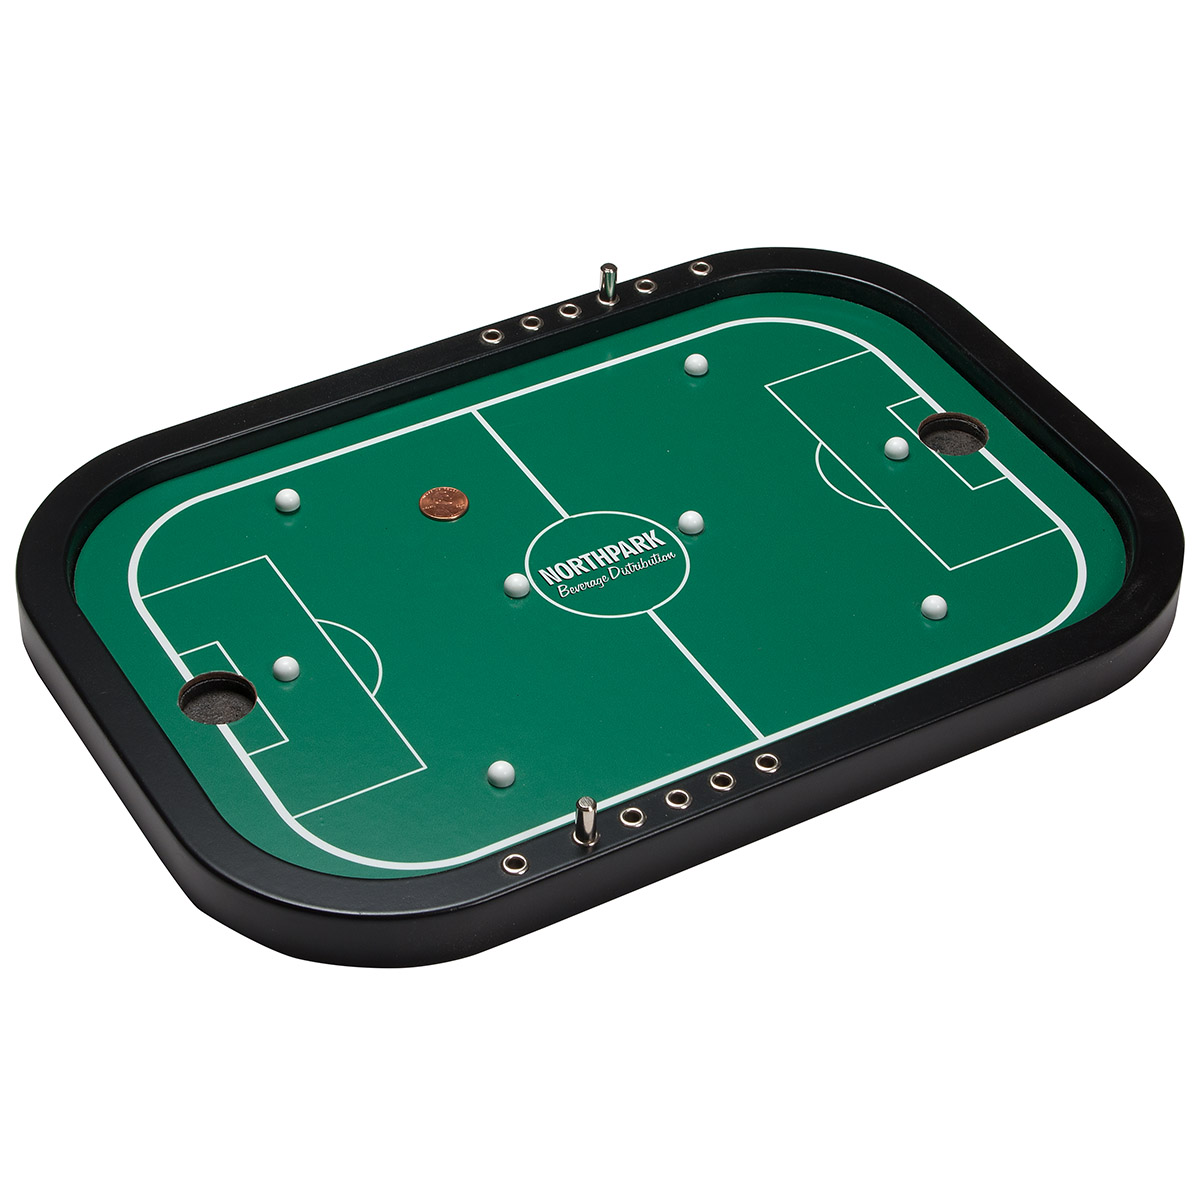 Penny Soccer Executive Wooden Board Game, WAB-PS18, Full Colour Imprint